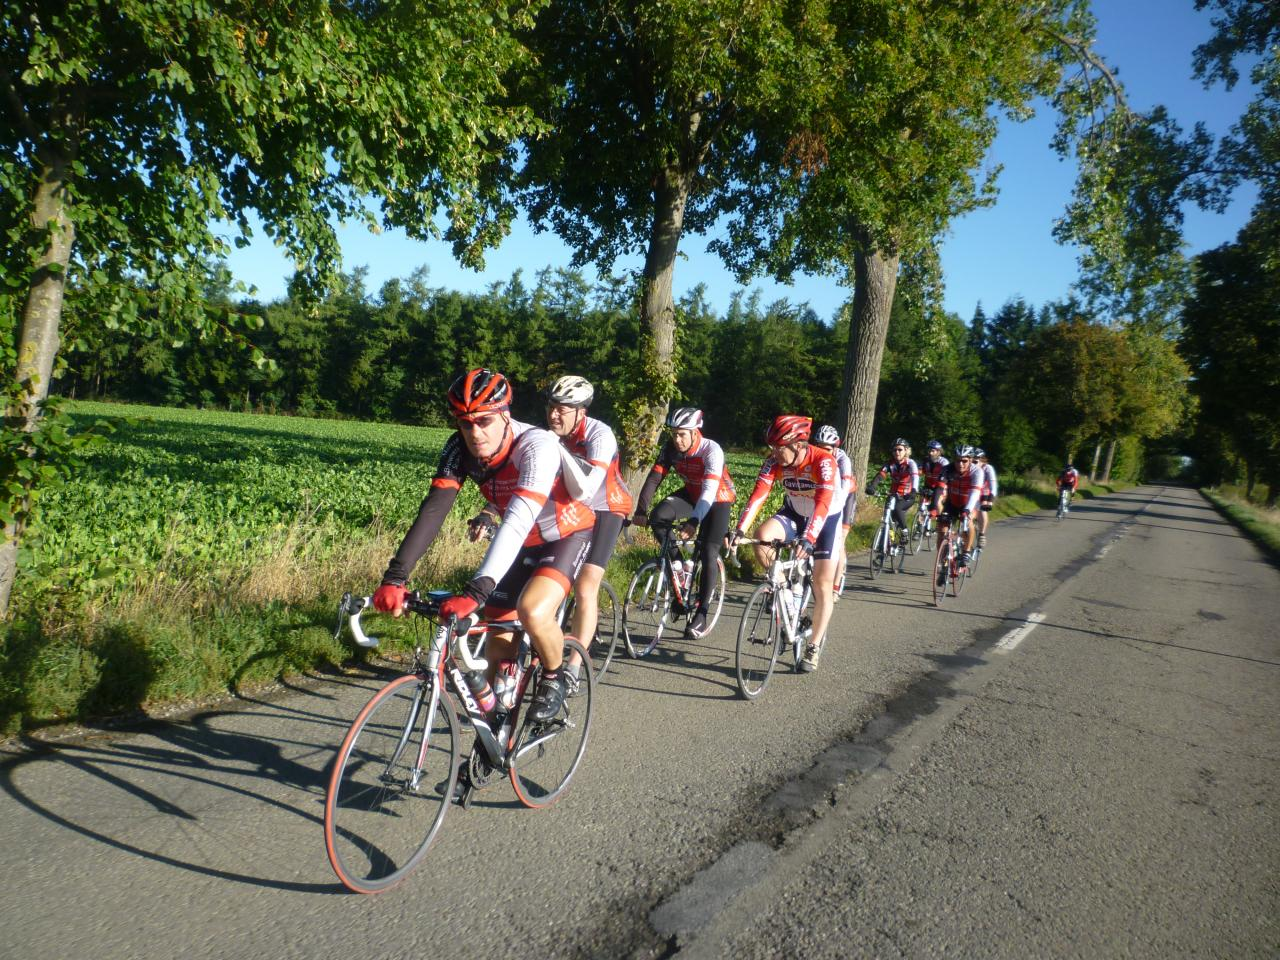 Allure soutenue les cyclos d'Hasselt!